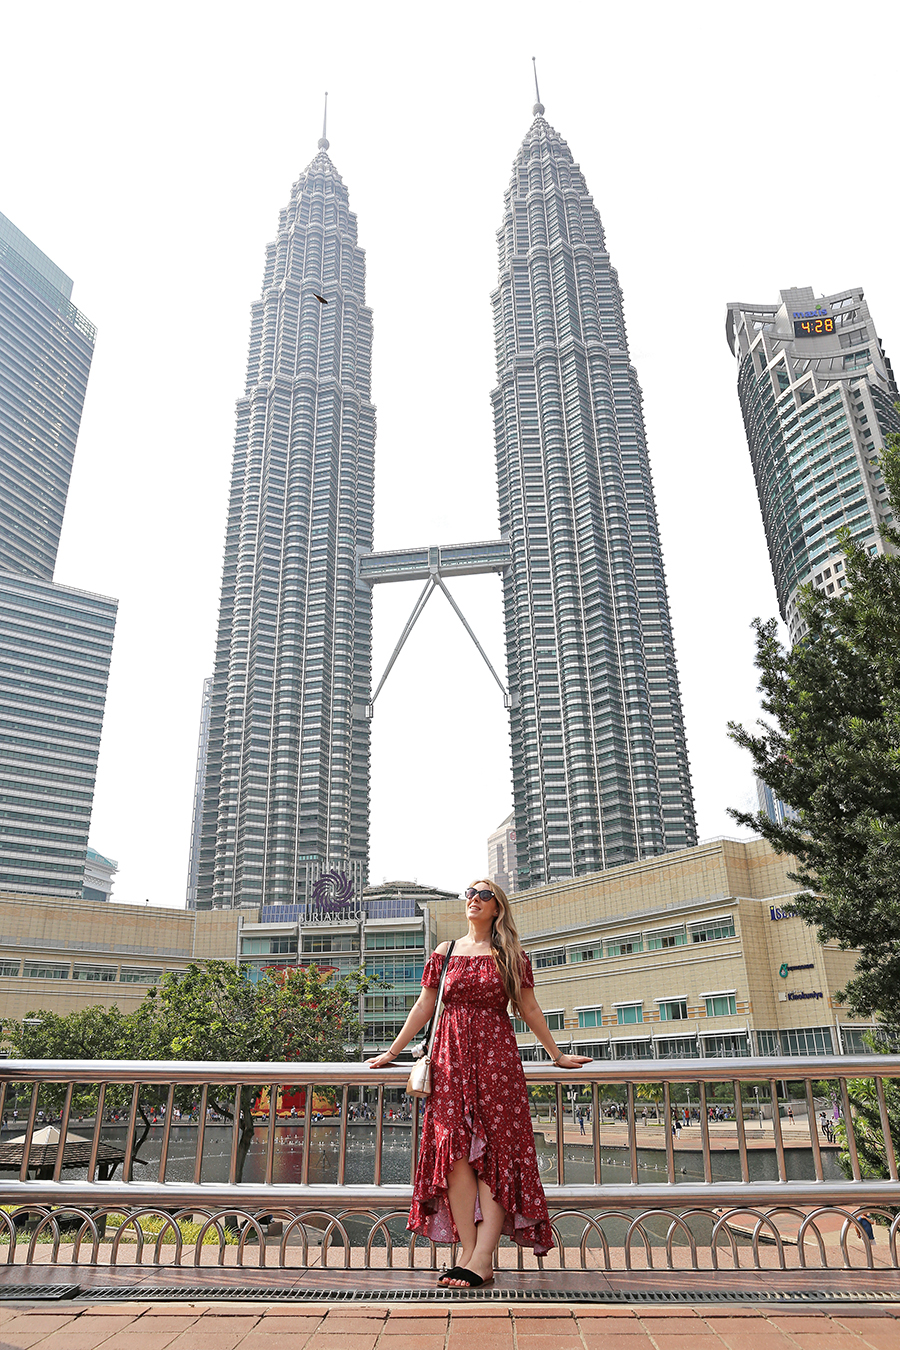 24 Hours in Kuala Lumpur - What & Where to See, Eat, & Do